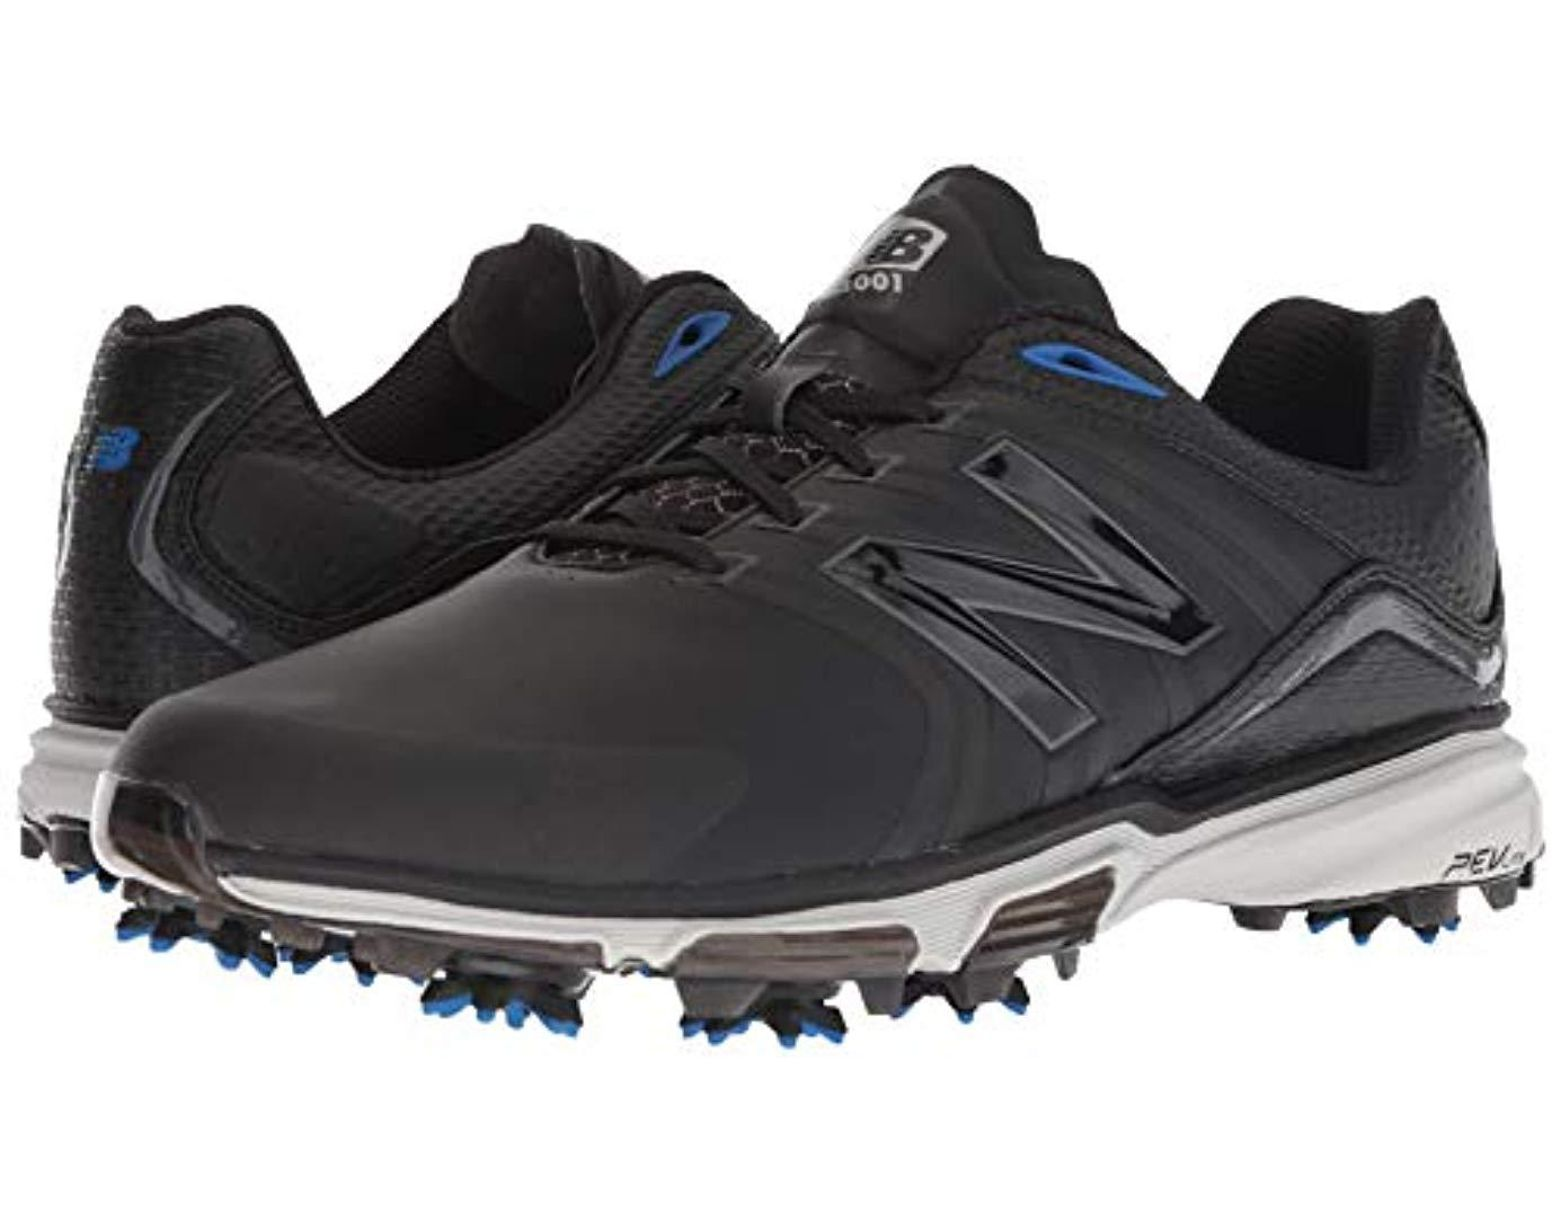 b4f4813a43747 New Balance Nb Tour Golf Shoe in Black for Men - Save 40% - Lyst